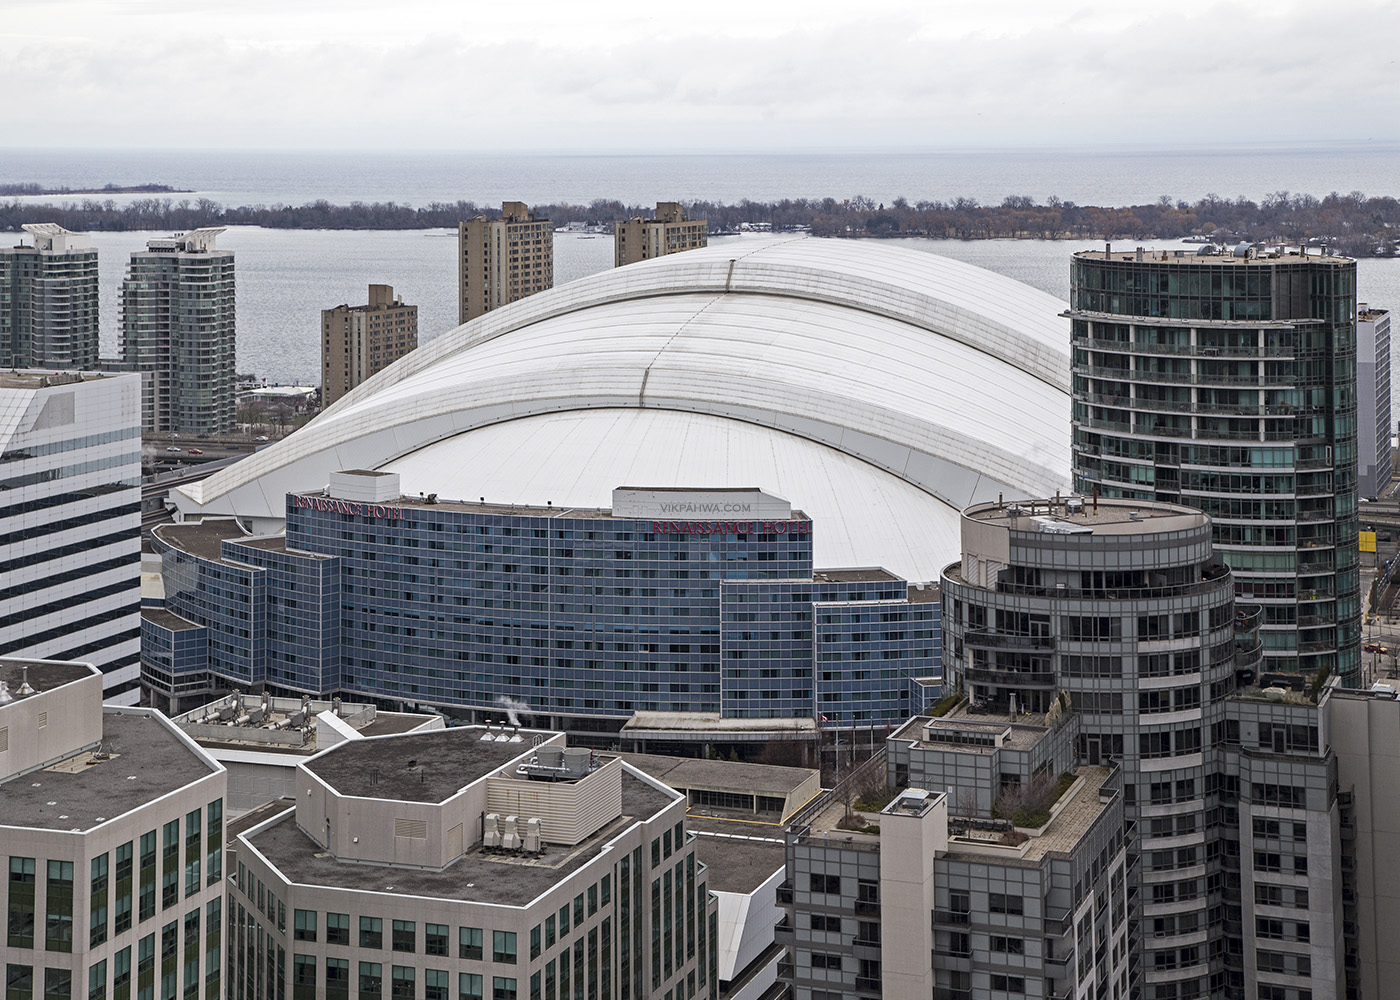 20170330. A bird's eye view of Skydome, I mean Rogers Centre, an